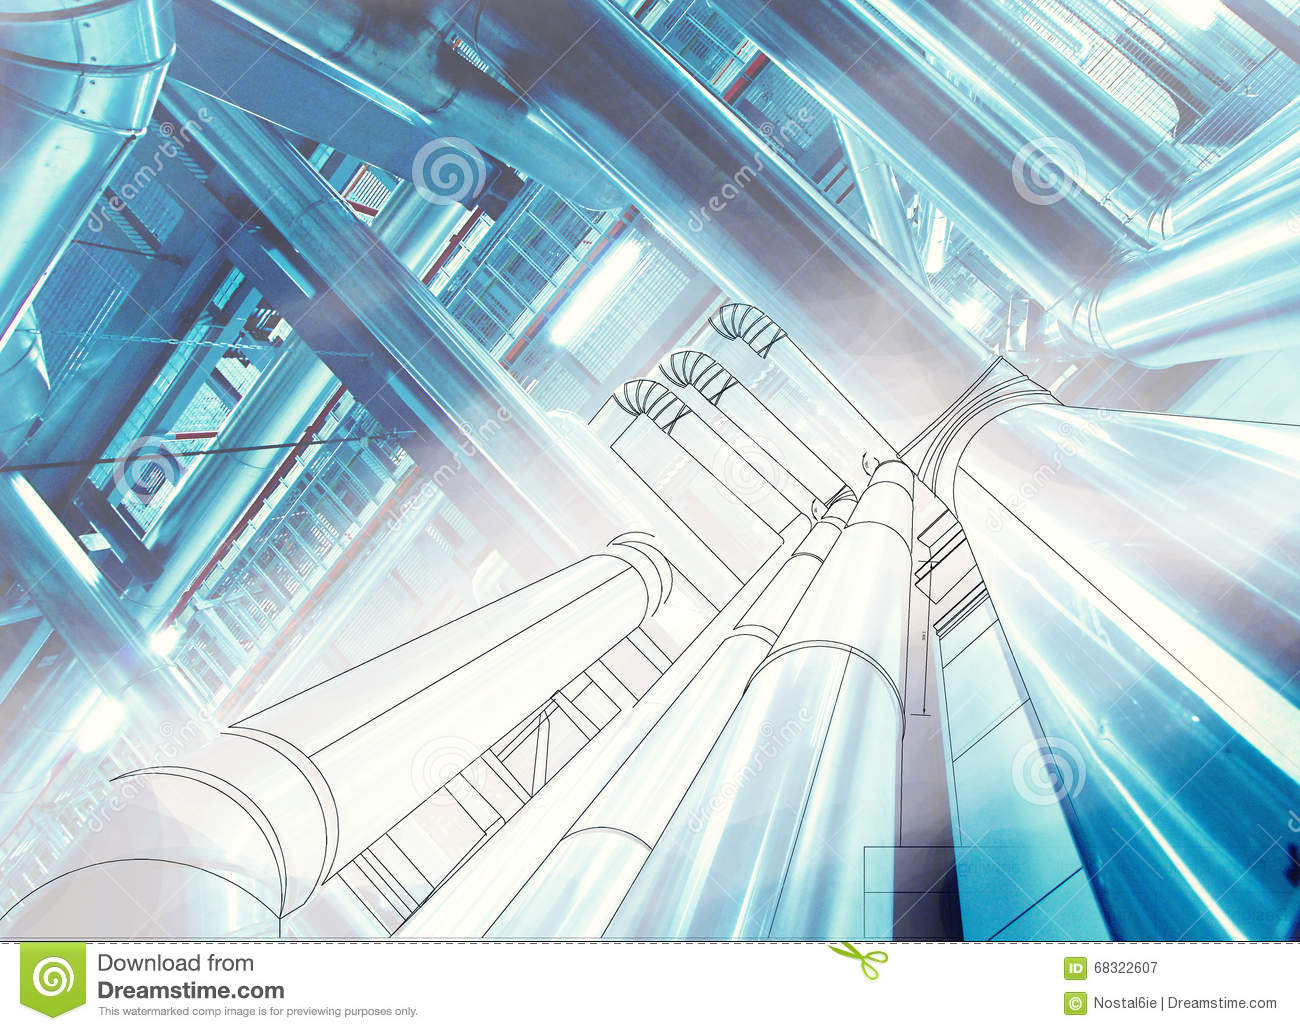 Wireframe Computer Cad Design Of Pipelines At Modern Industrial ...